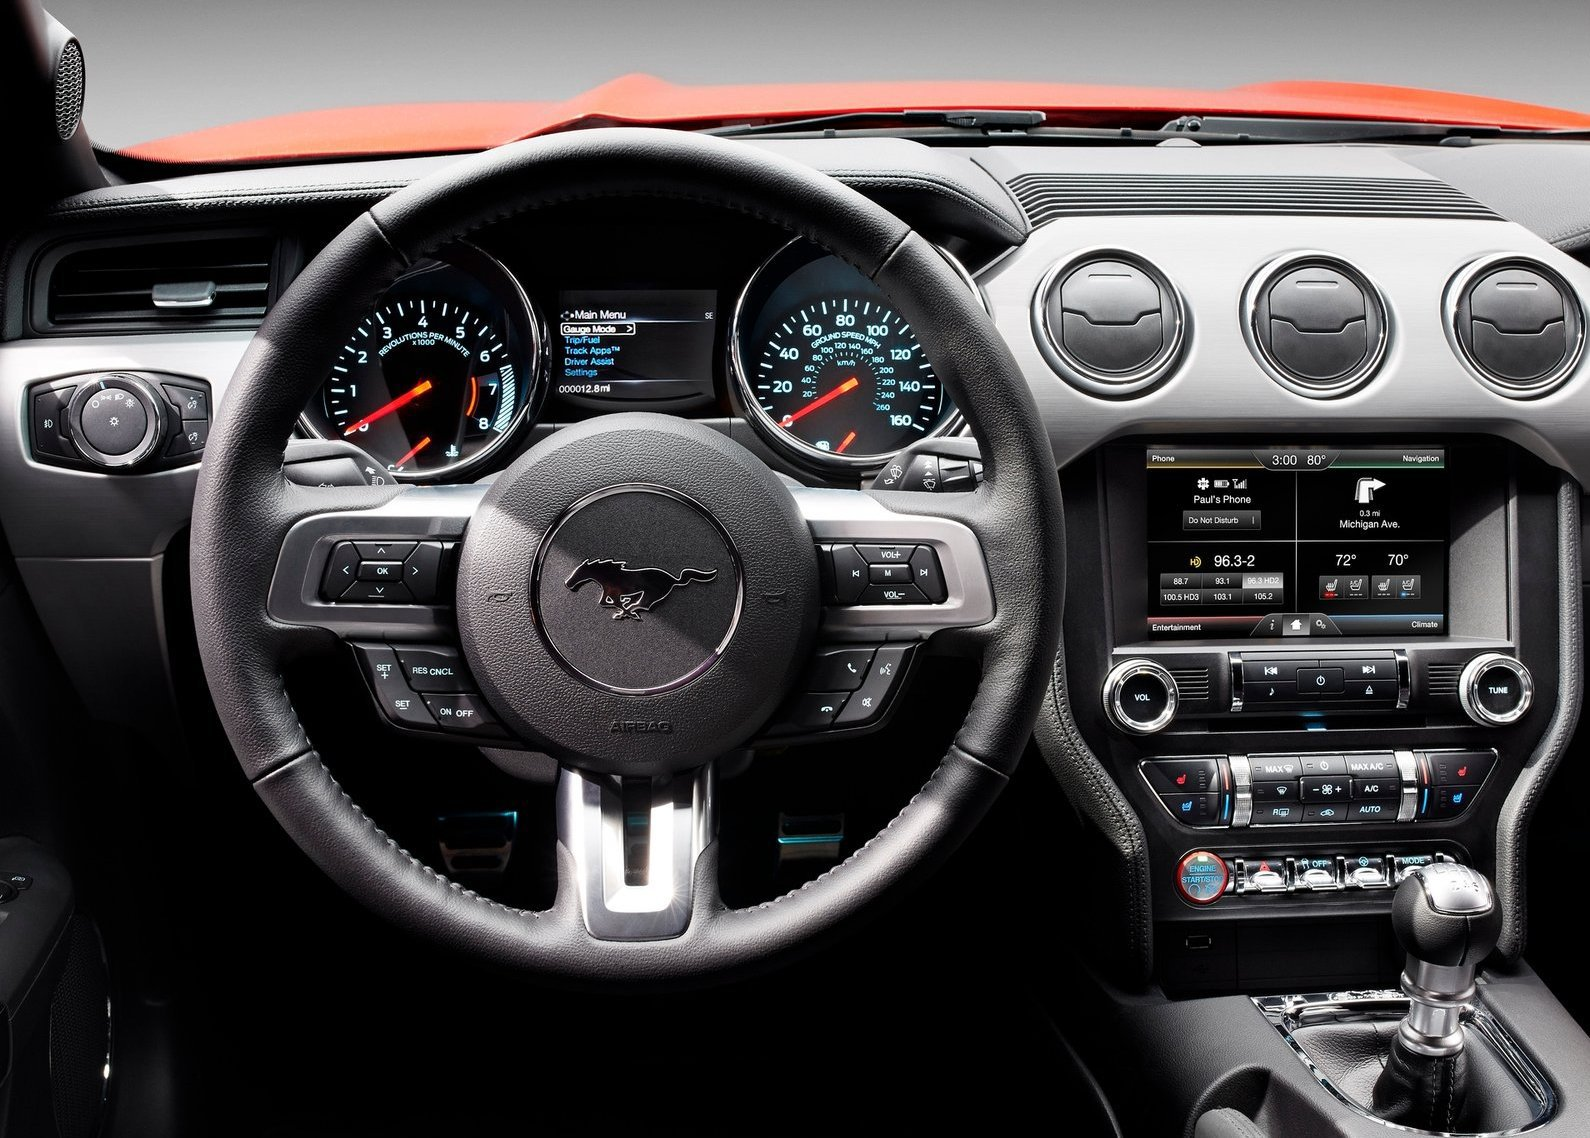 Ford-Mustang_GT_2015_1600x1200_wallpaper_30.jpg